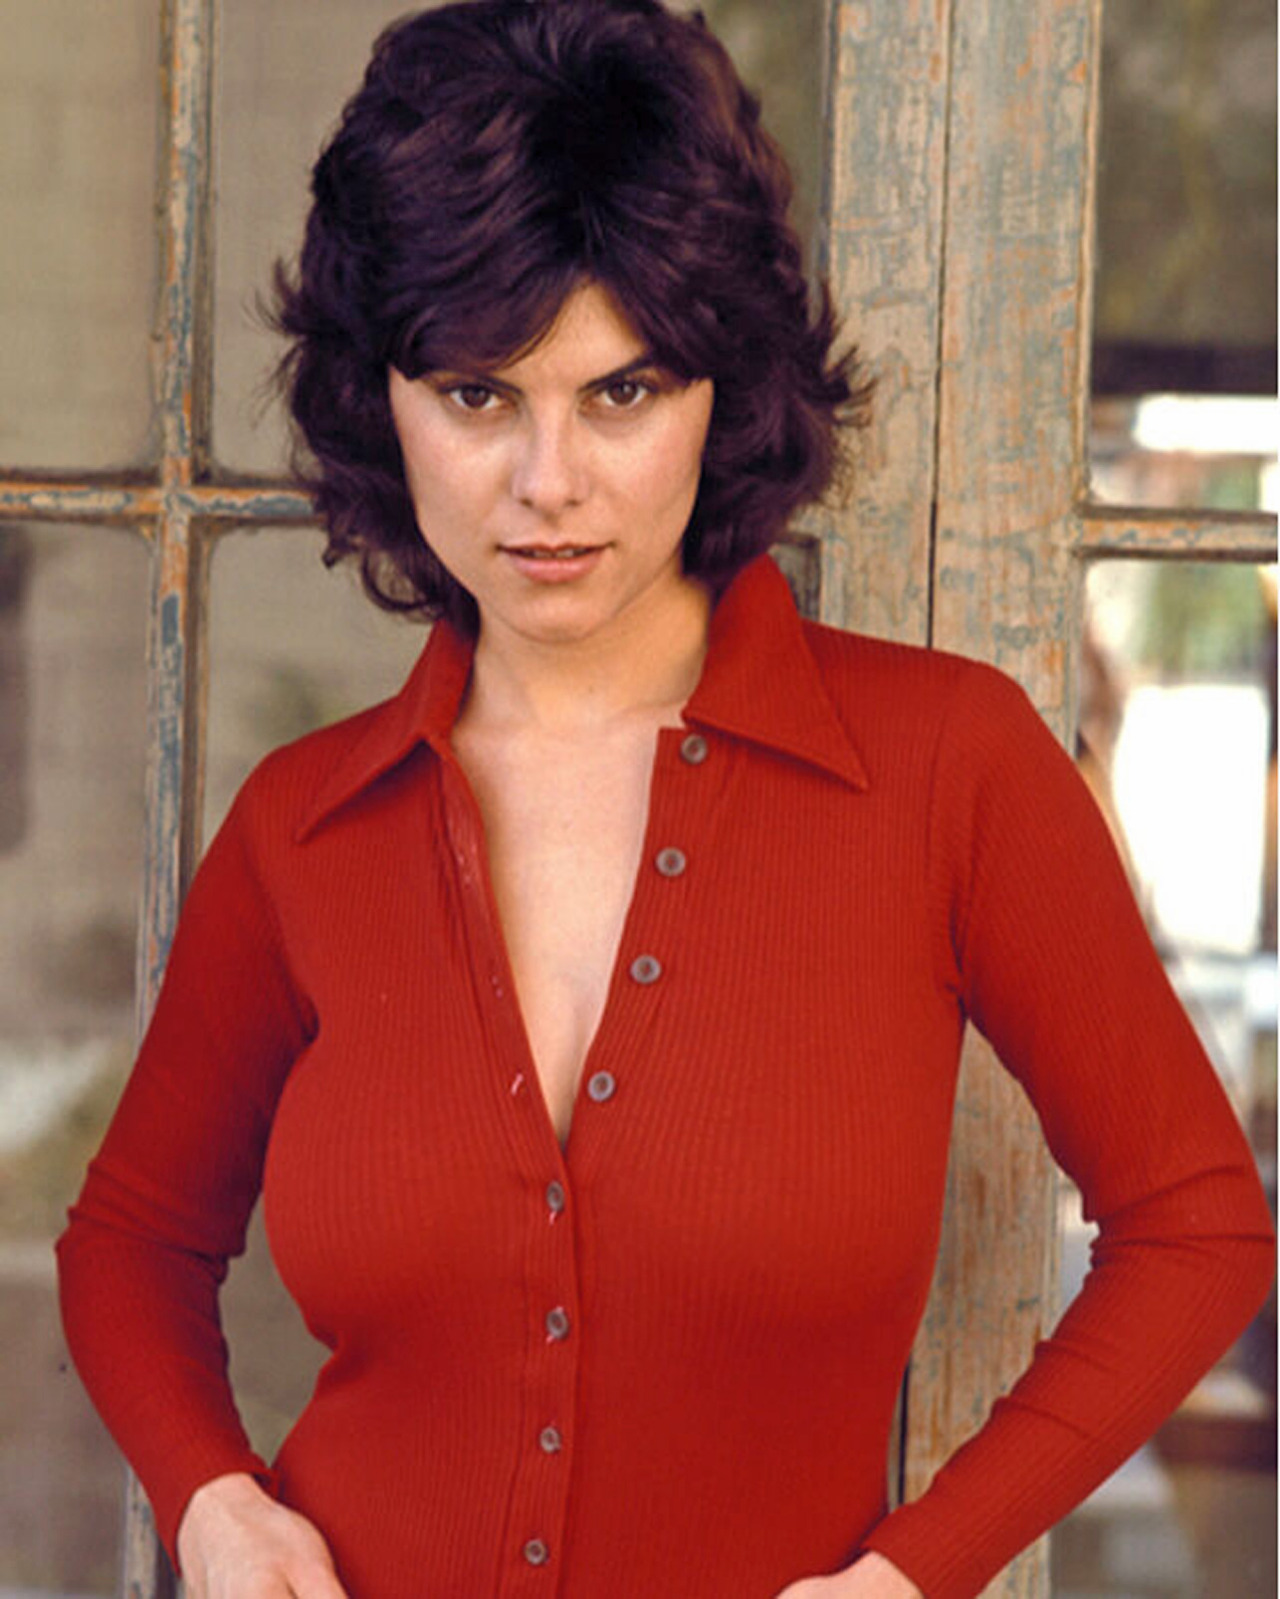 adrienne barbeau nude, topless pictures, playboy photos, sex scene